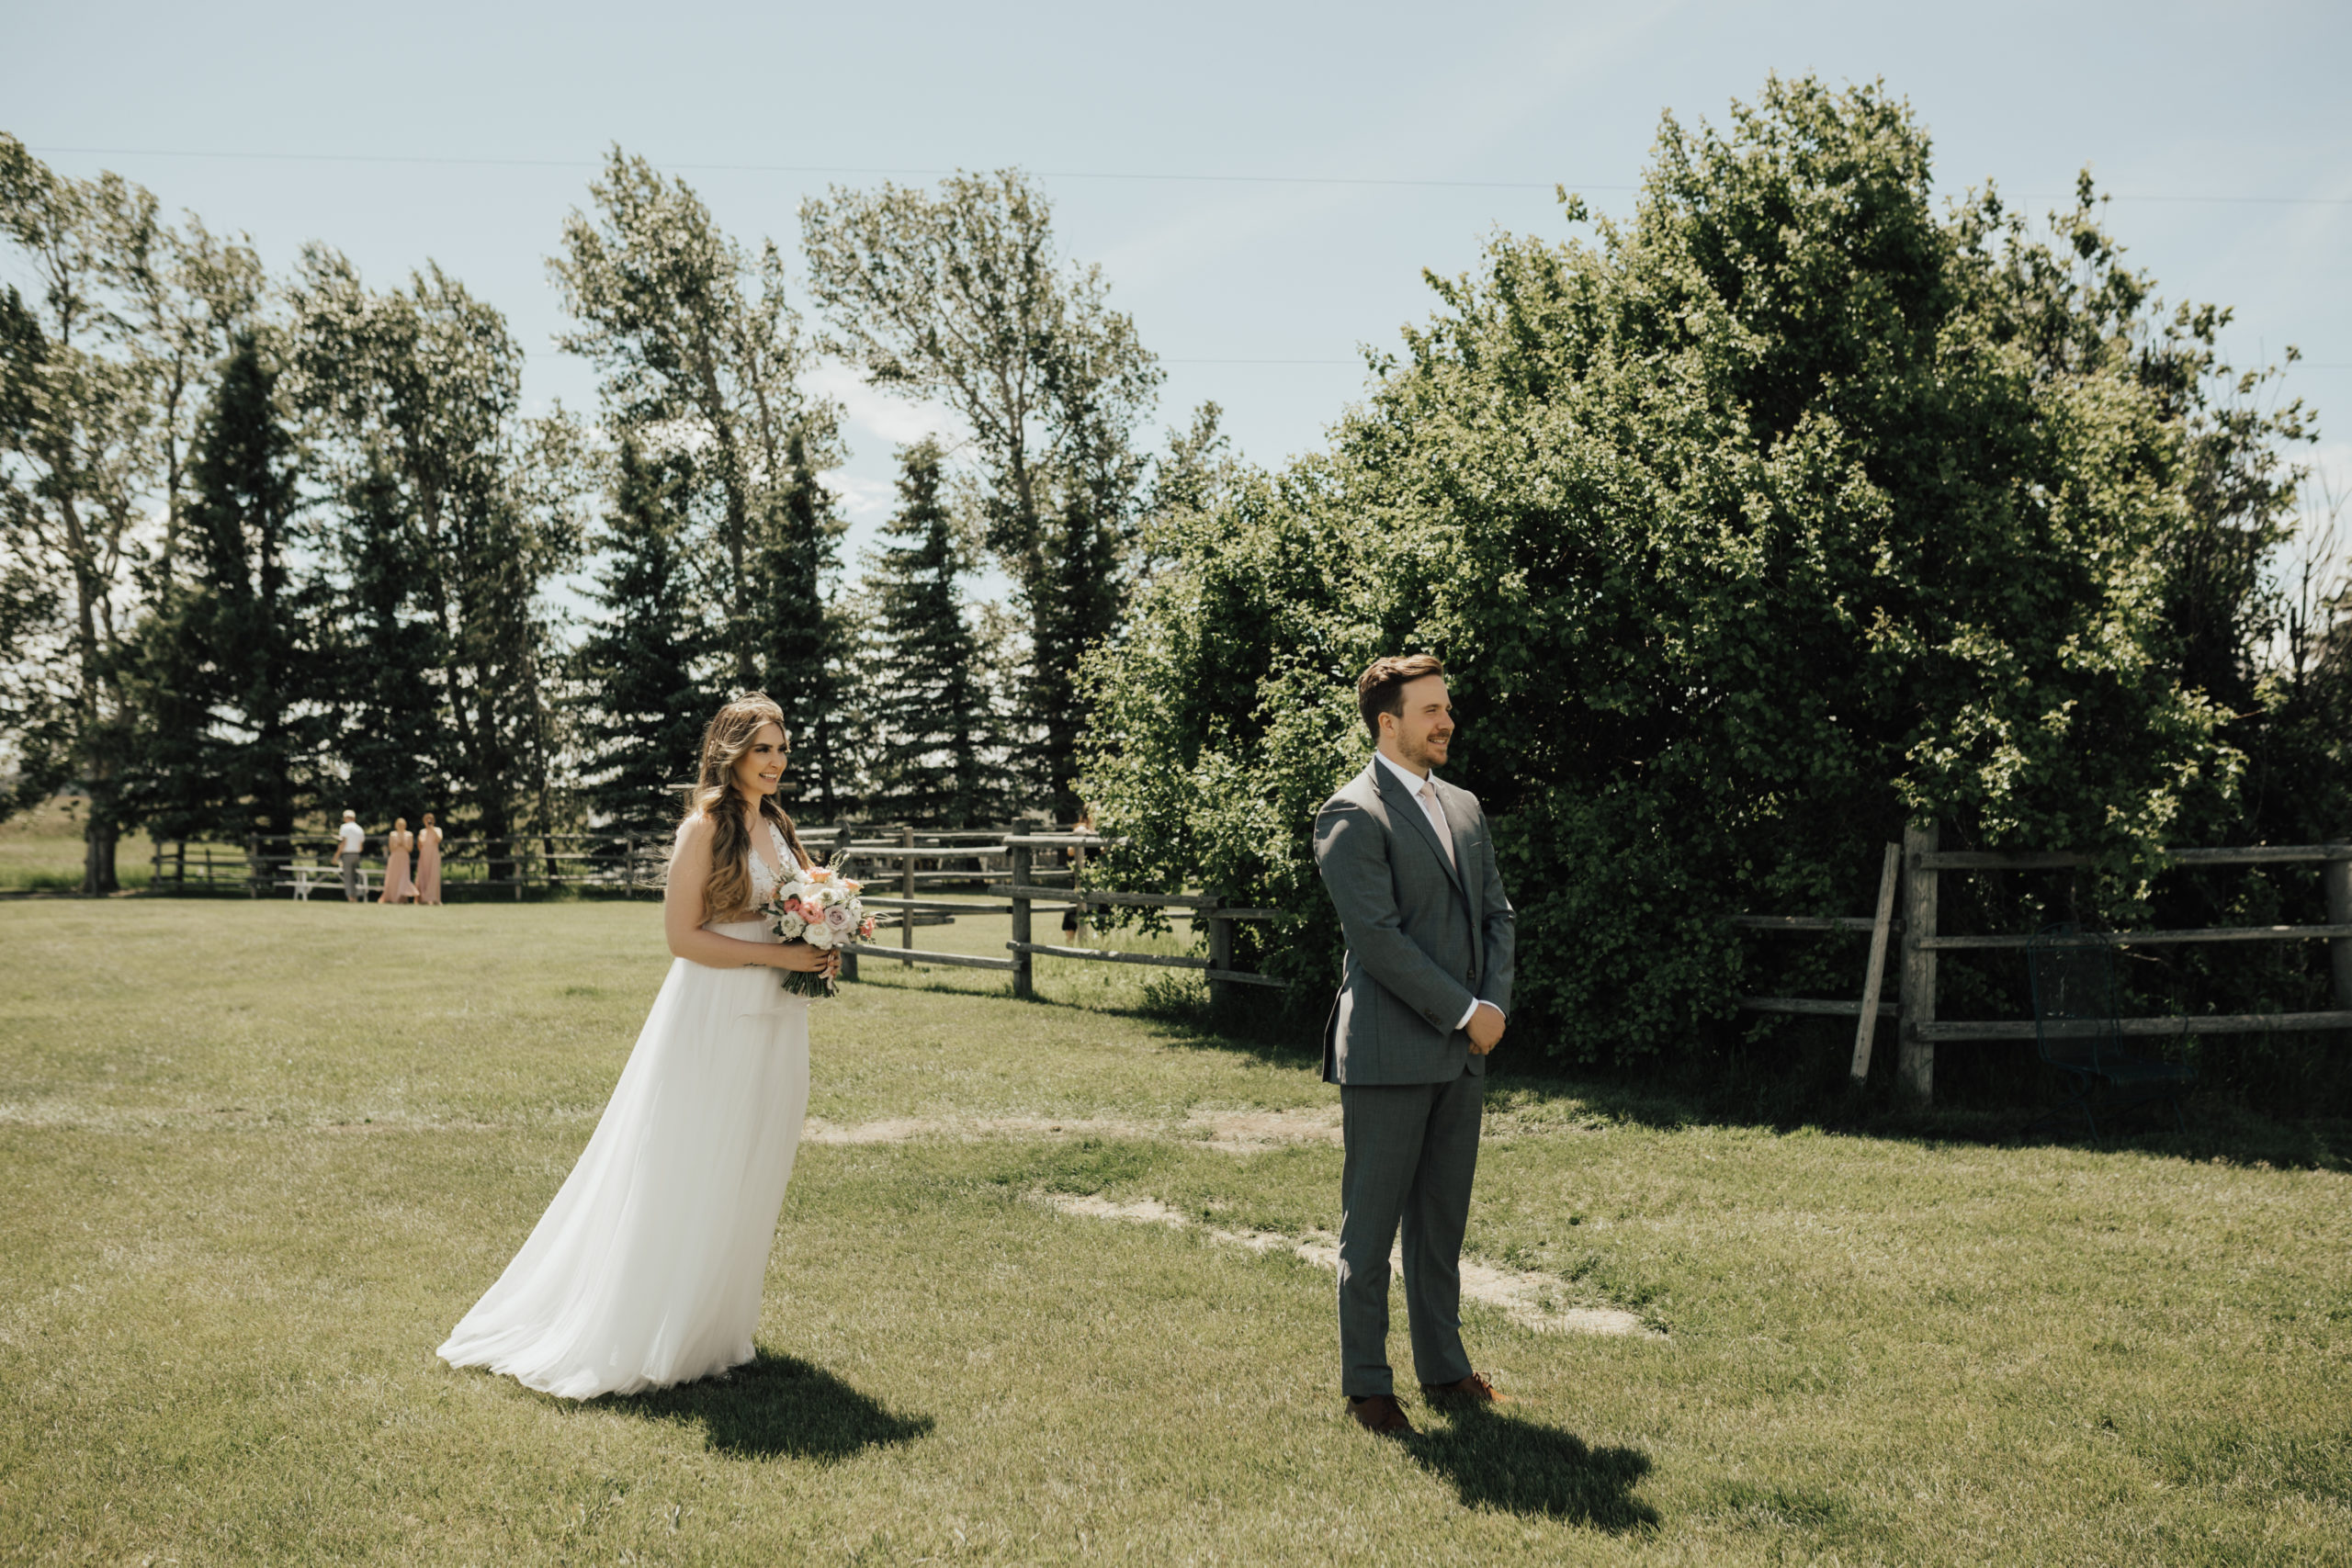 groom waits for his bride as she walks up to him for their wedding first look